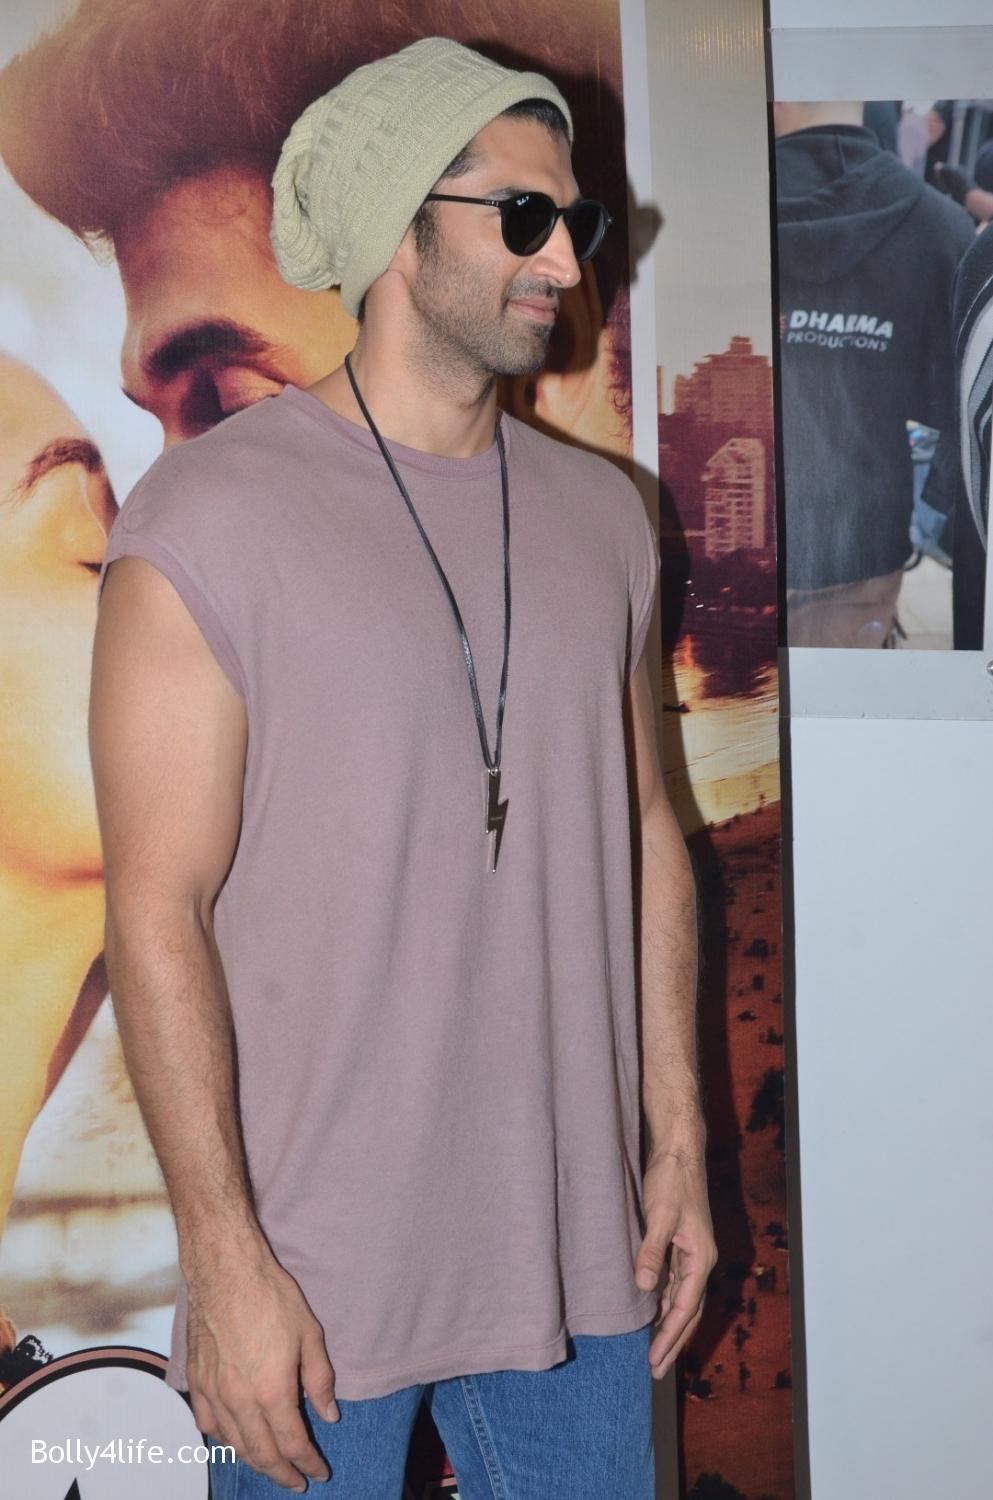 Aditya-Roy-Kapur-and-Shraddha-Kapoor-during-the-media-interaction-for-the-film-Ok-Jaanu-5.jpg